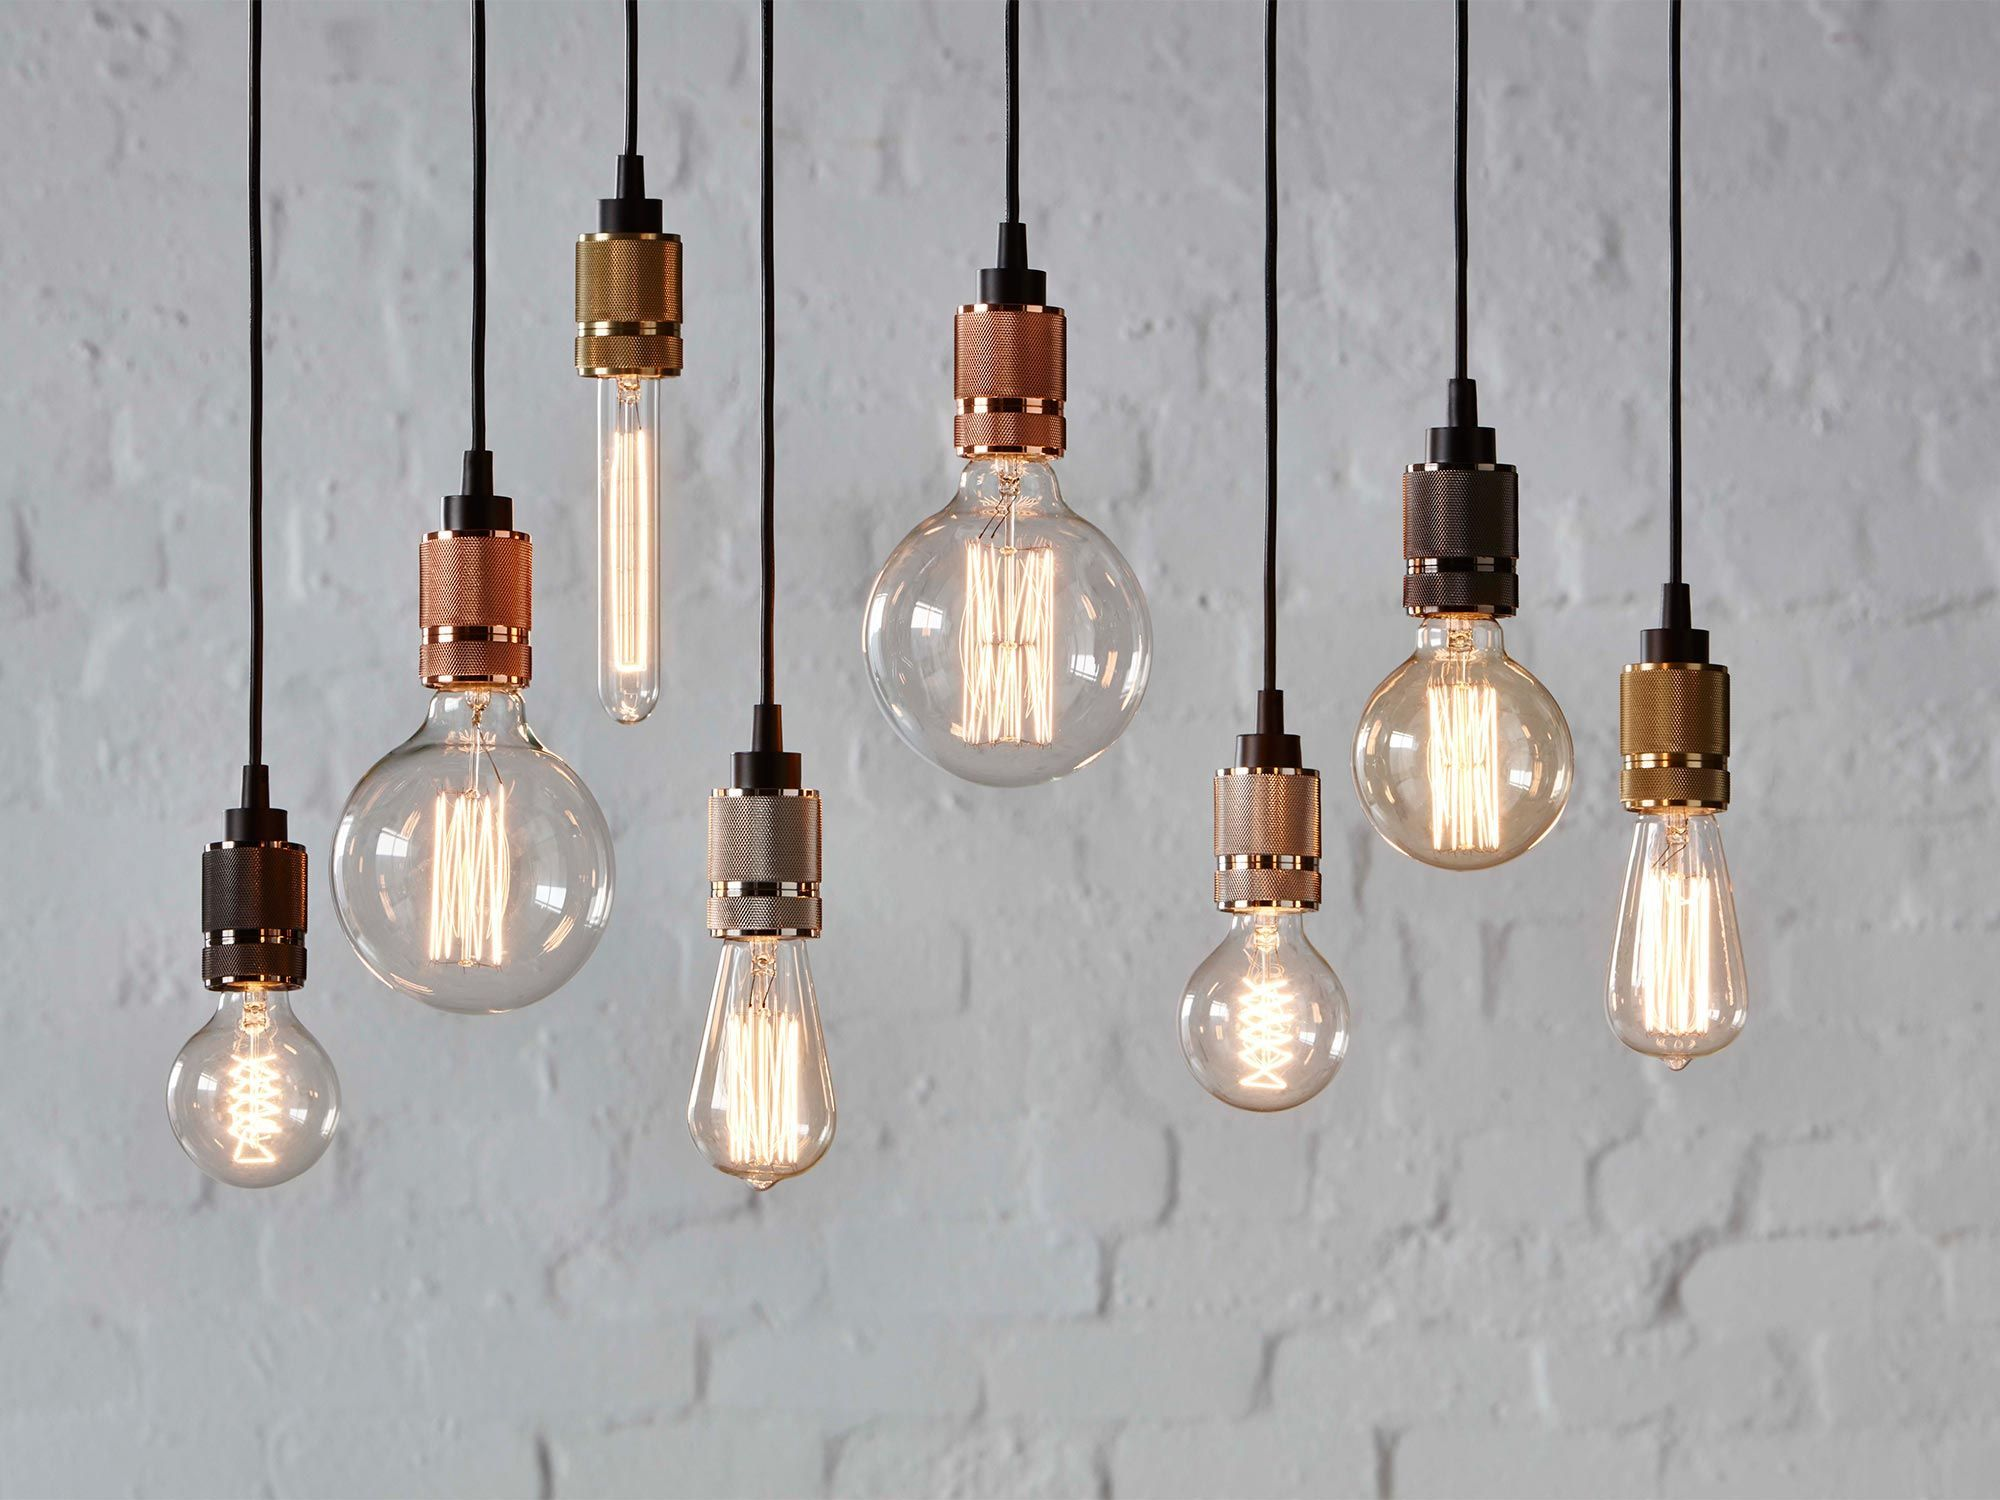 Bunnings Pendant Lights Kitchenlightingbunnings Vintage Light Bulbs Pendant Lighting Bedroom Globe Decor